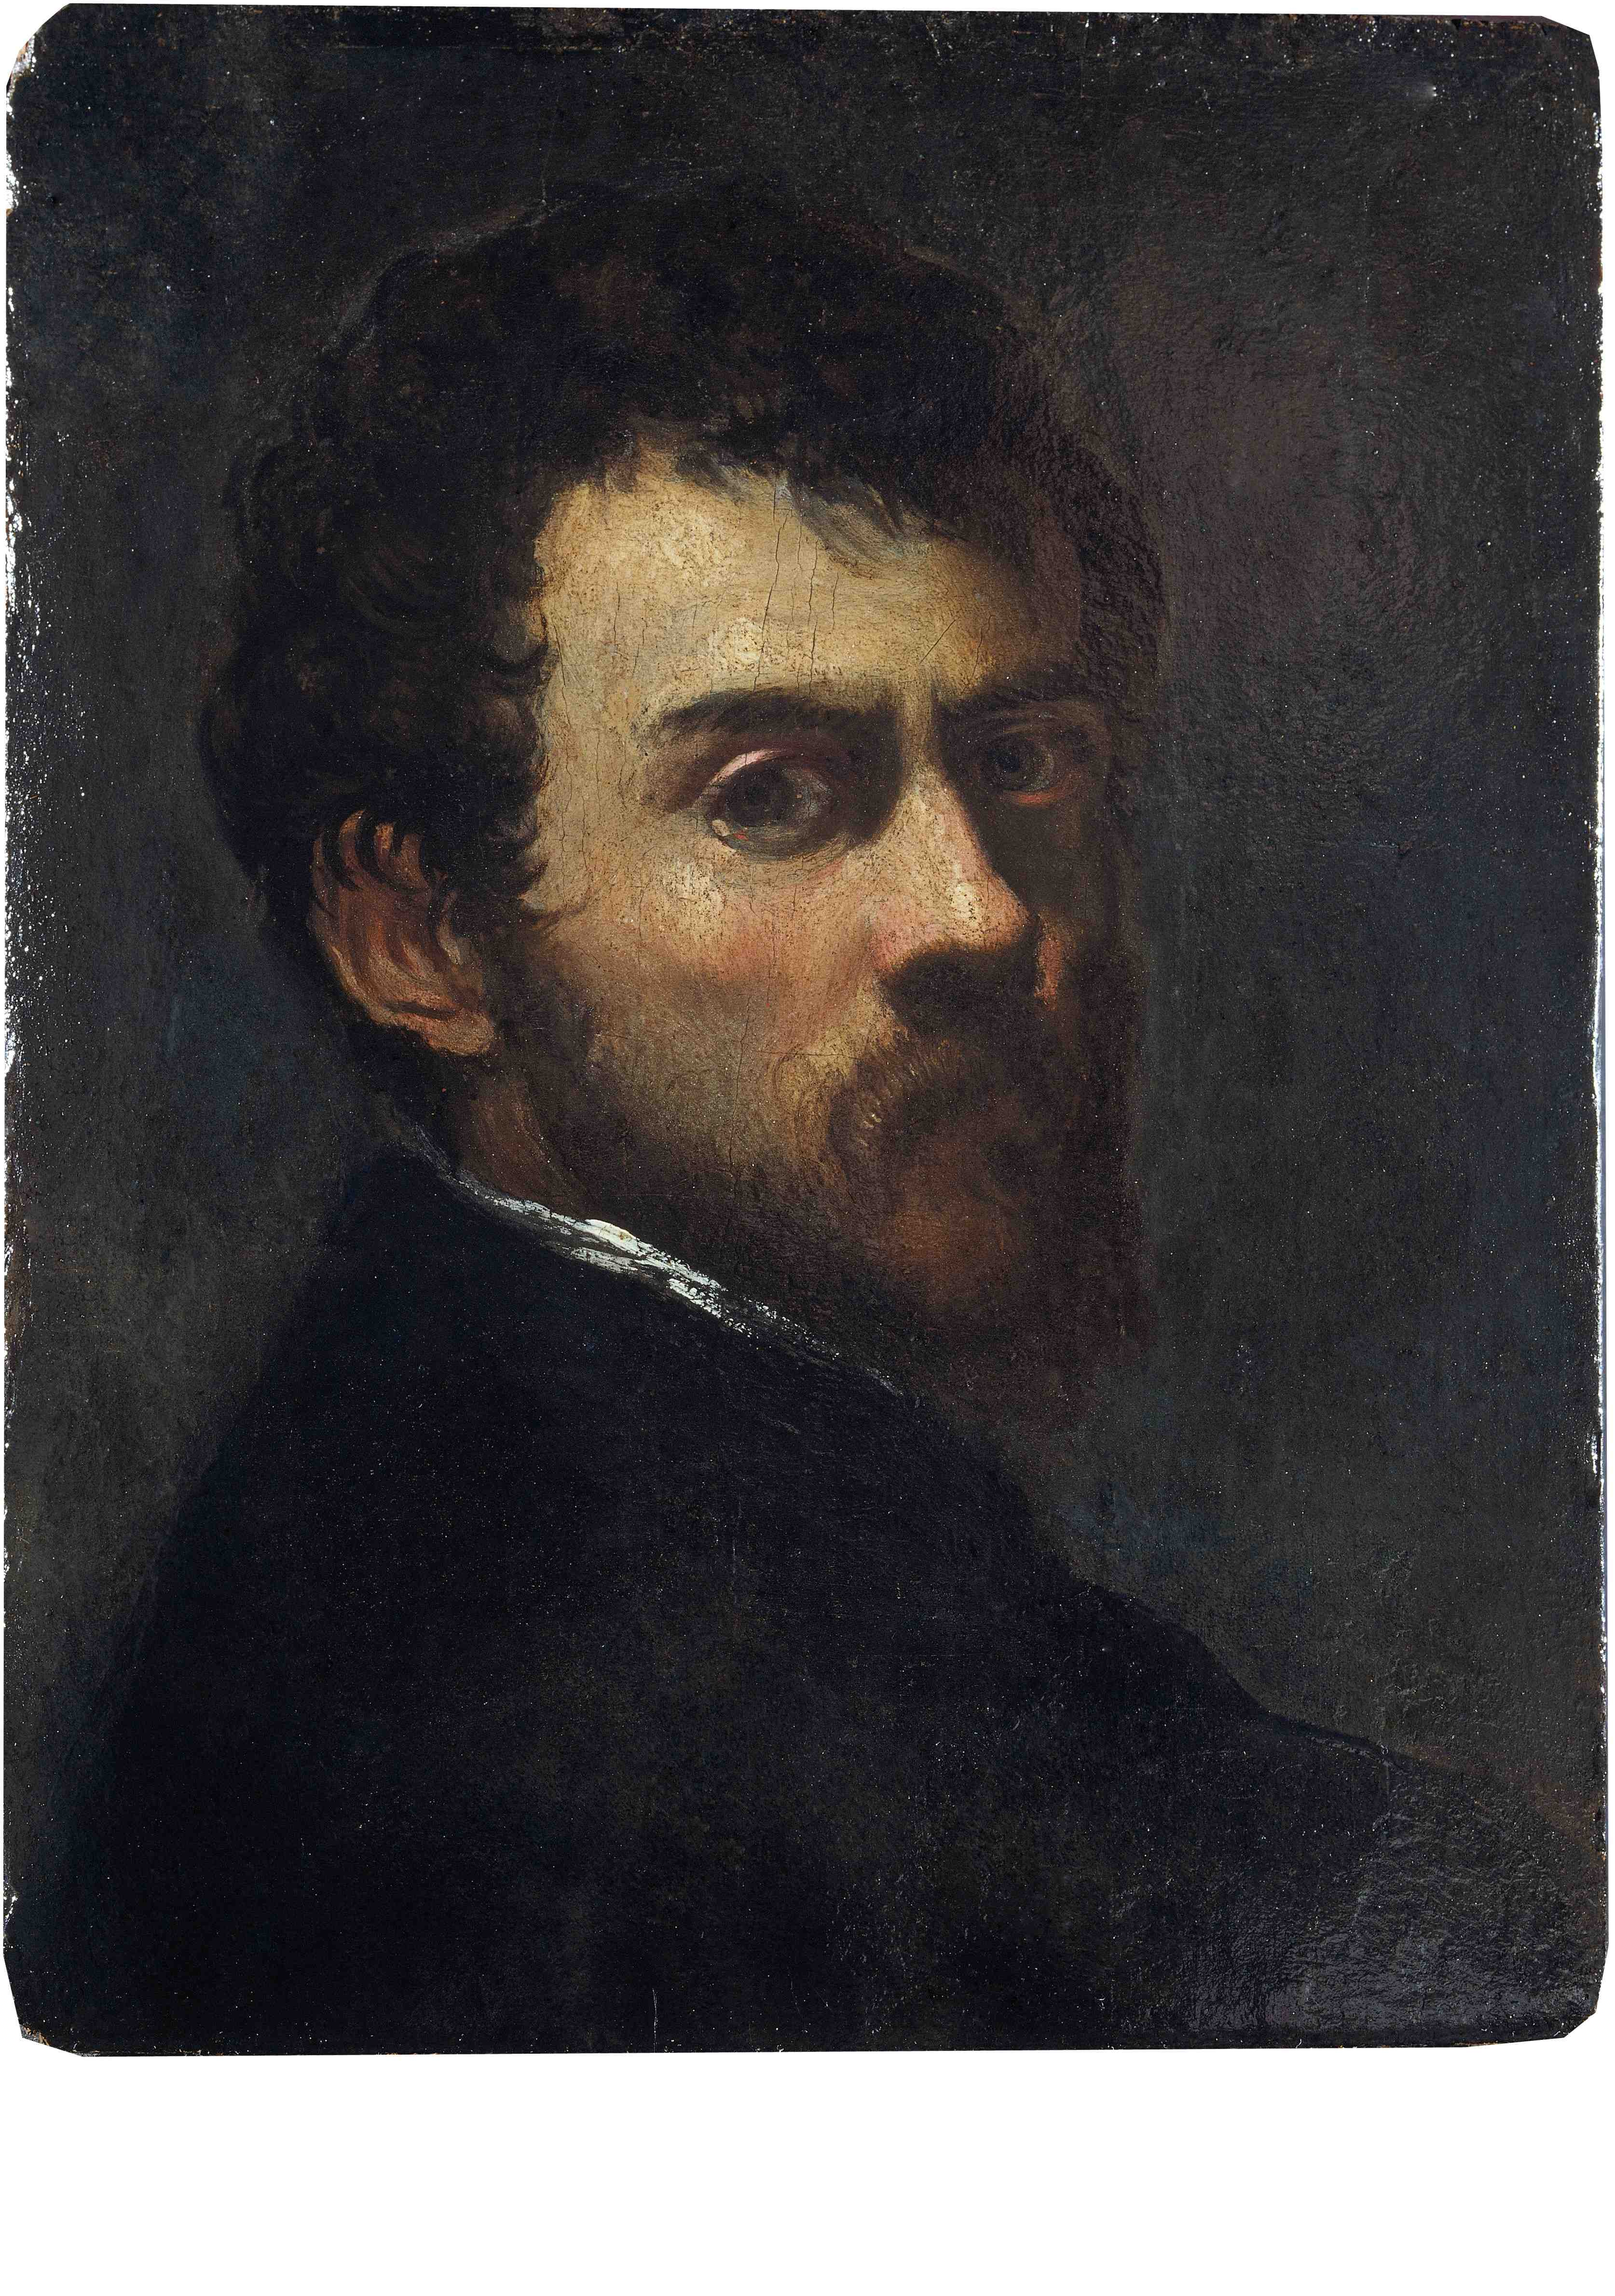 Tintoretto - Autoritratto come giovane uomo - 1548 - Victoria and Albert Museum. Bequeathed by Constantine Alexander Ionides